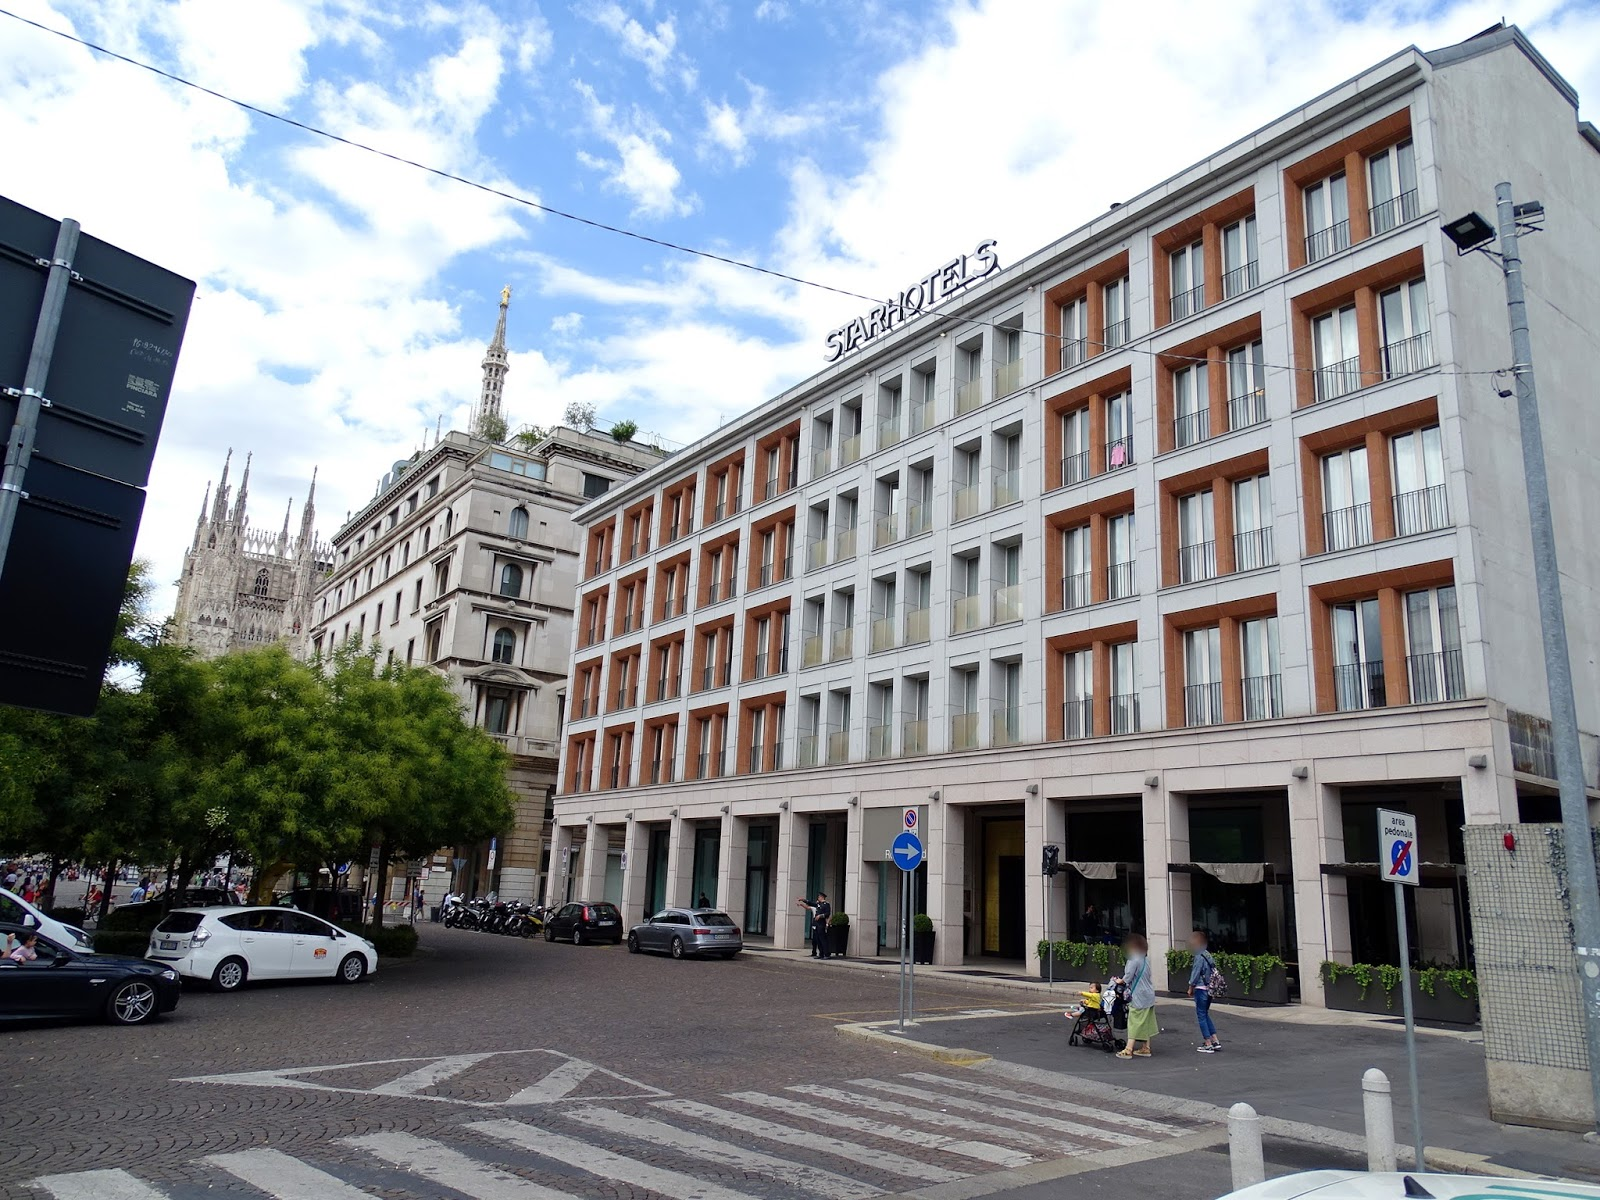 With Finding A Hotel Near Duomo Di Milano My No 1 Priority I Narrowed Down Search To Handful Of Hotels Before Finally Deciding On Starhotel Rosa